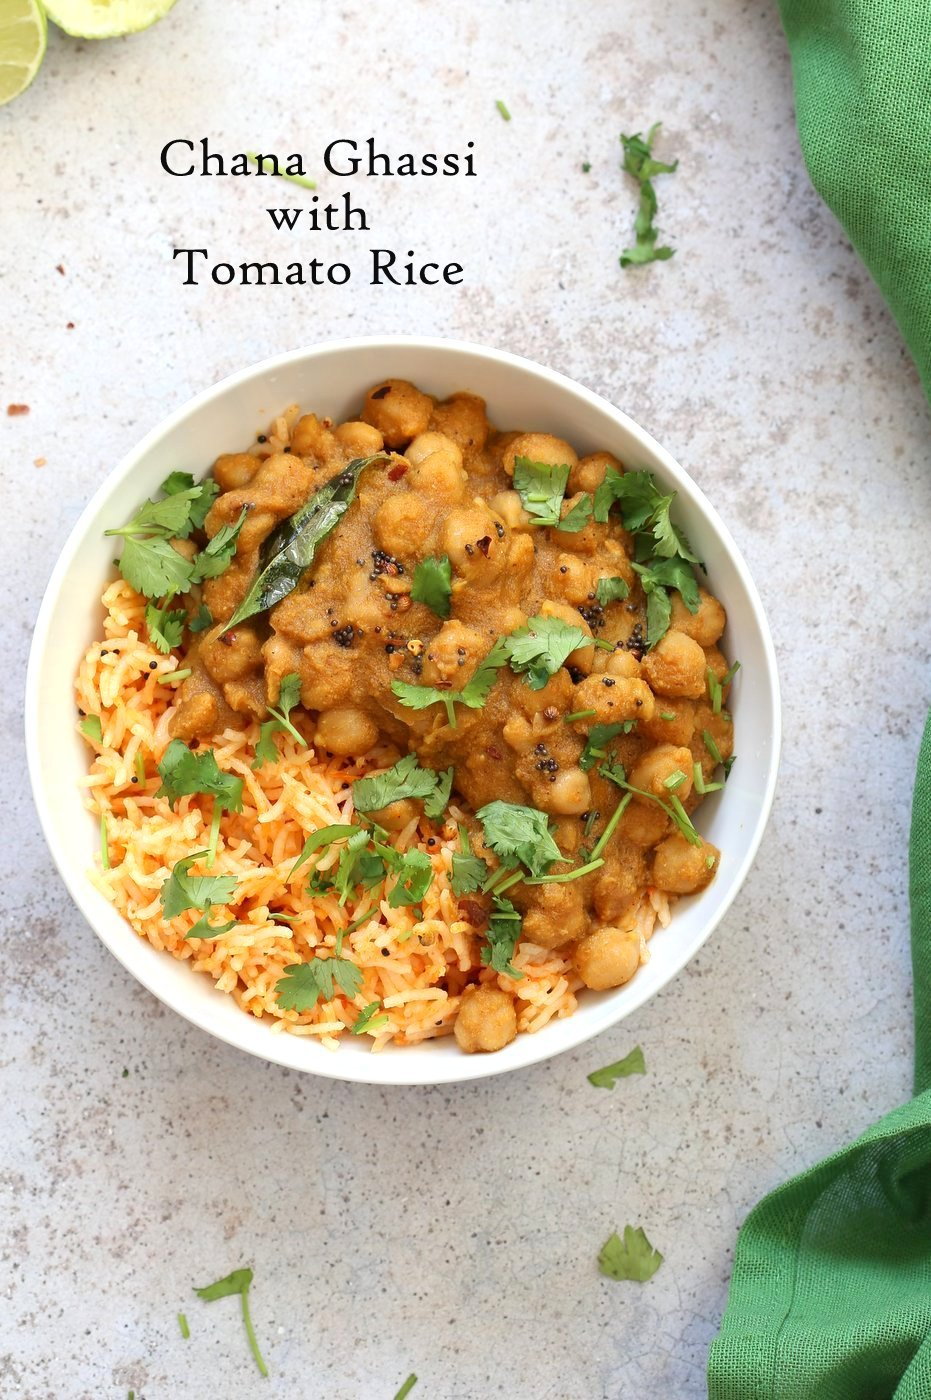 Chana Ghassi /Gassi - Mangalorean Coconut Onion sauce with Chickpeas. Regional Indian Curry simplified. #Vegan Gluten-free Soy-free Nut-free #Recipe #veganricha | VeganRicha.com